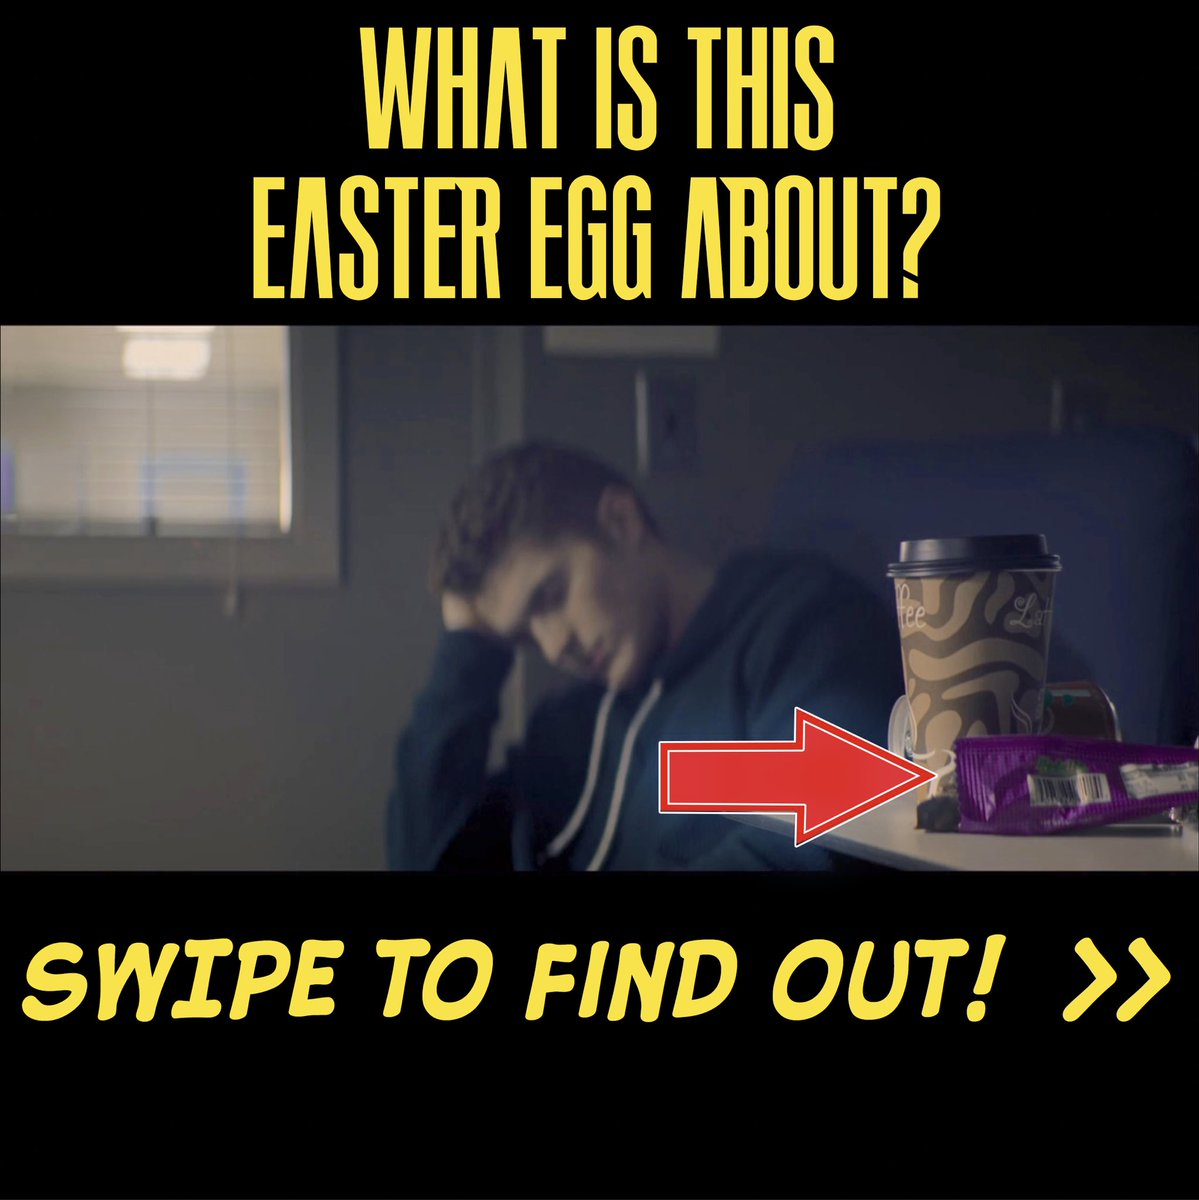 Here's some info about an Easter Egg you almost certainly missed!  #Stargirl #eastereggs #BehindTheScenes #DCStargirl #podcast https://t.co/w8AERdoSXo